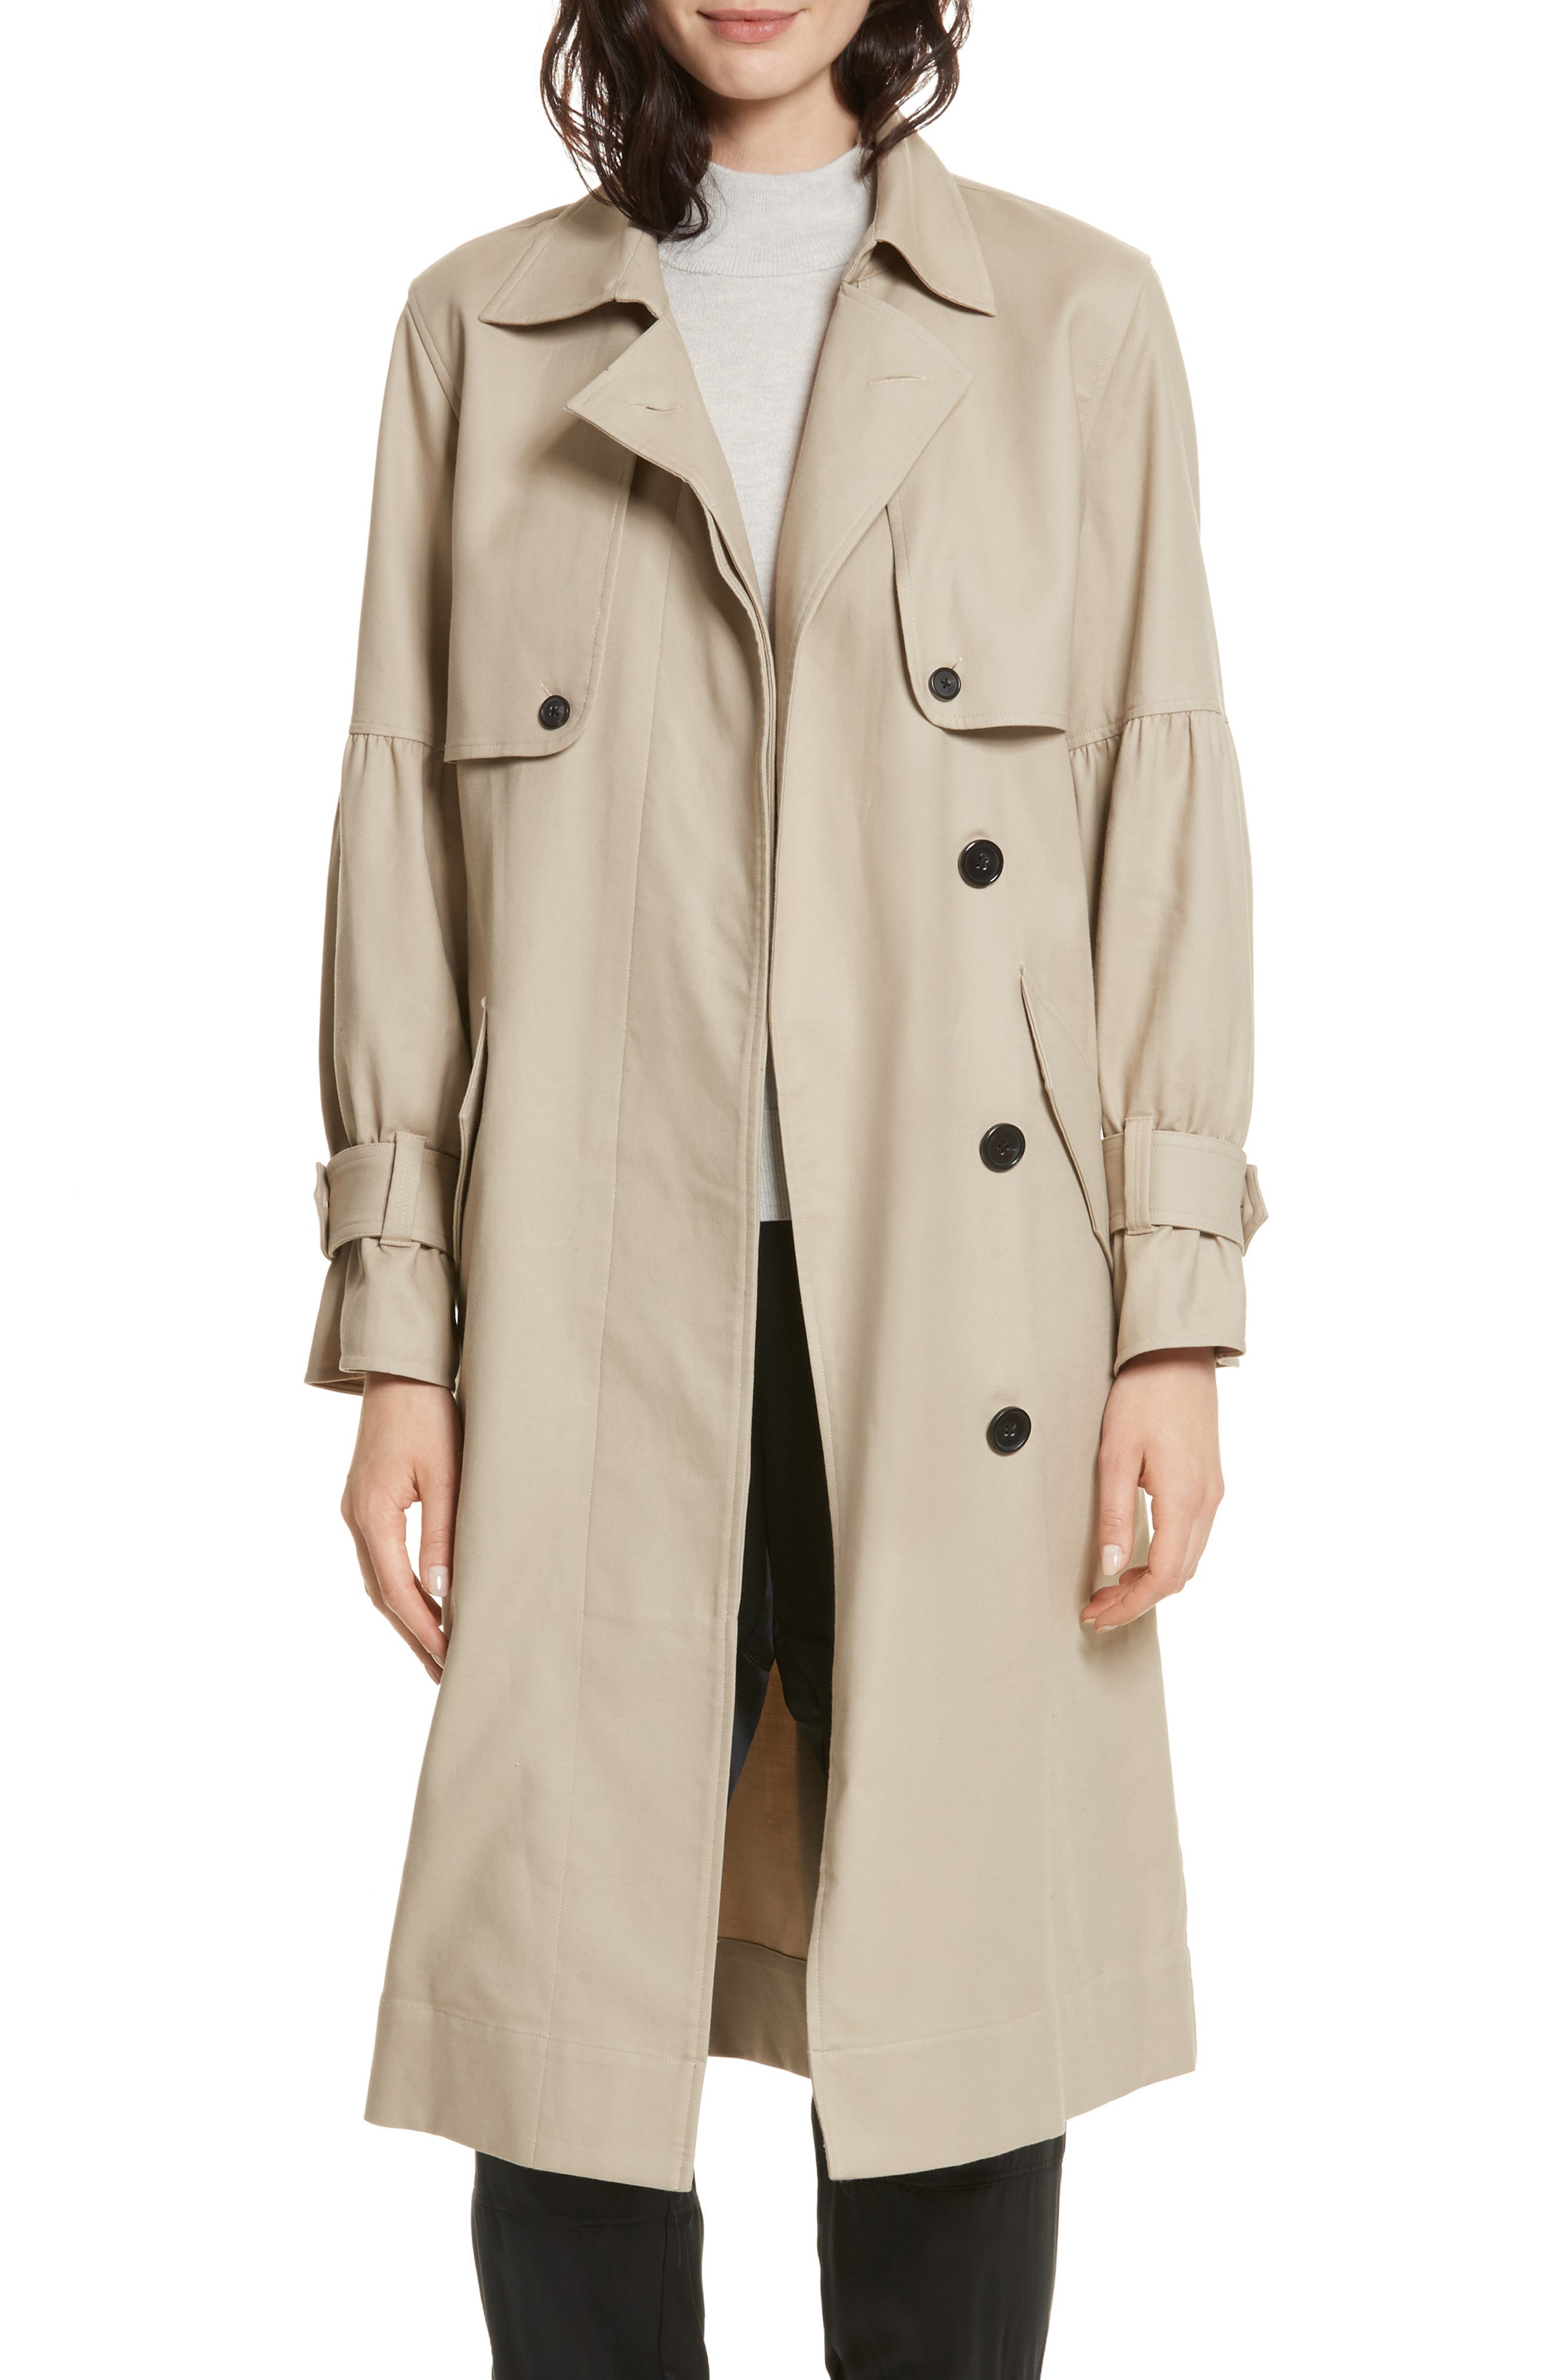 Alternate Image 1 Selected - Joie Alwena Cotton Trench Coat